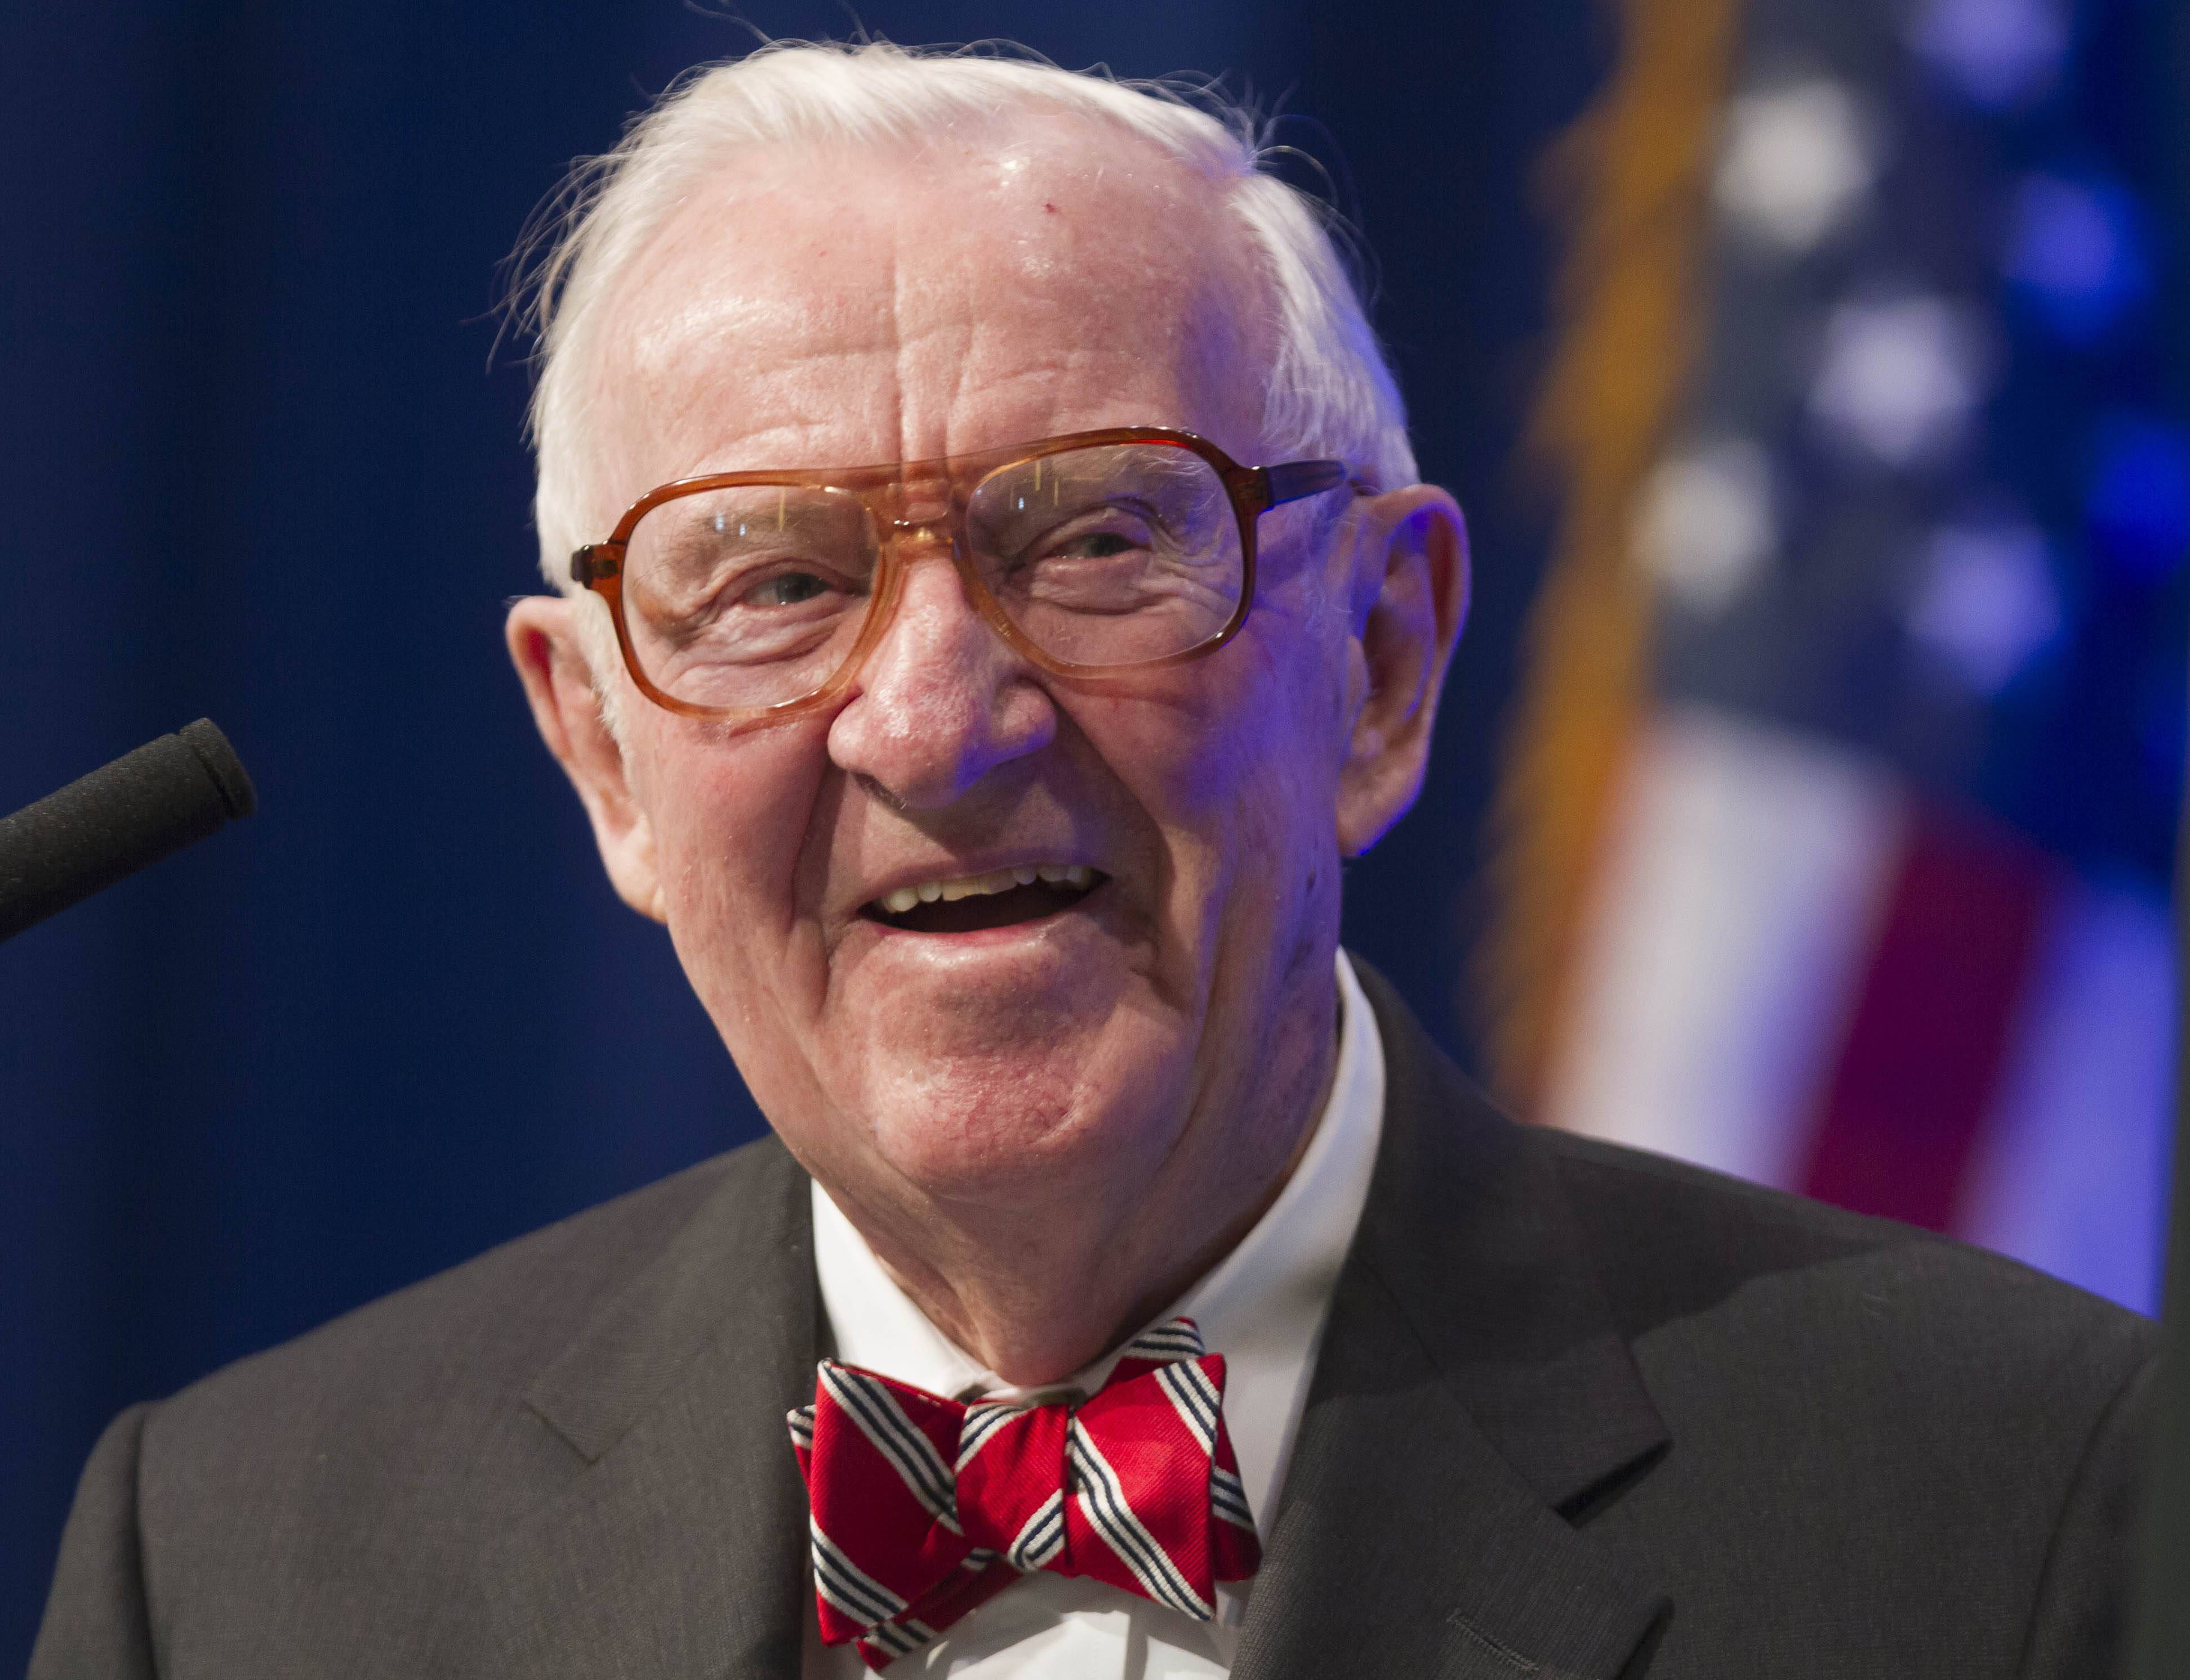 In the aftermath of the Connecticut school shootings that left 20 first-graders and six educators dead, retired Supreme Court Justice John Paul Stevens began thinking about ways to prevent a repeat. The result is Stevens' new book in which he calls for no fewer than six changes to the Constitution, of which two are directly related to guns.